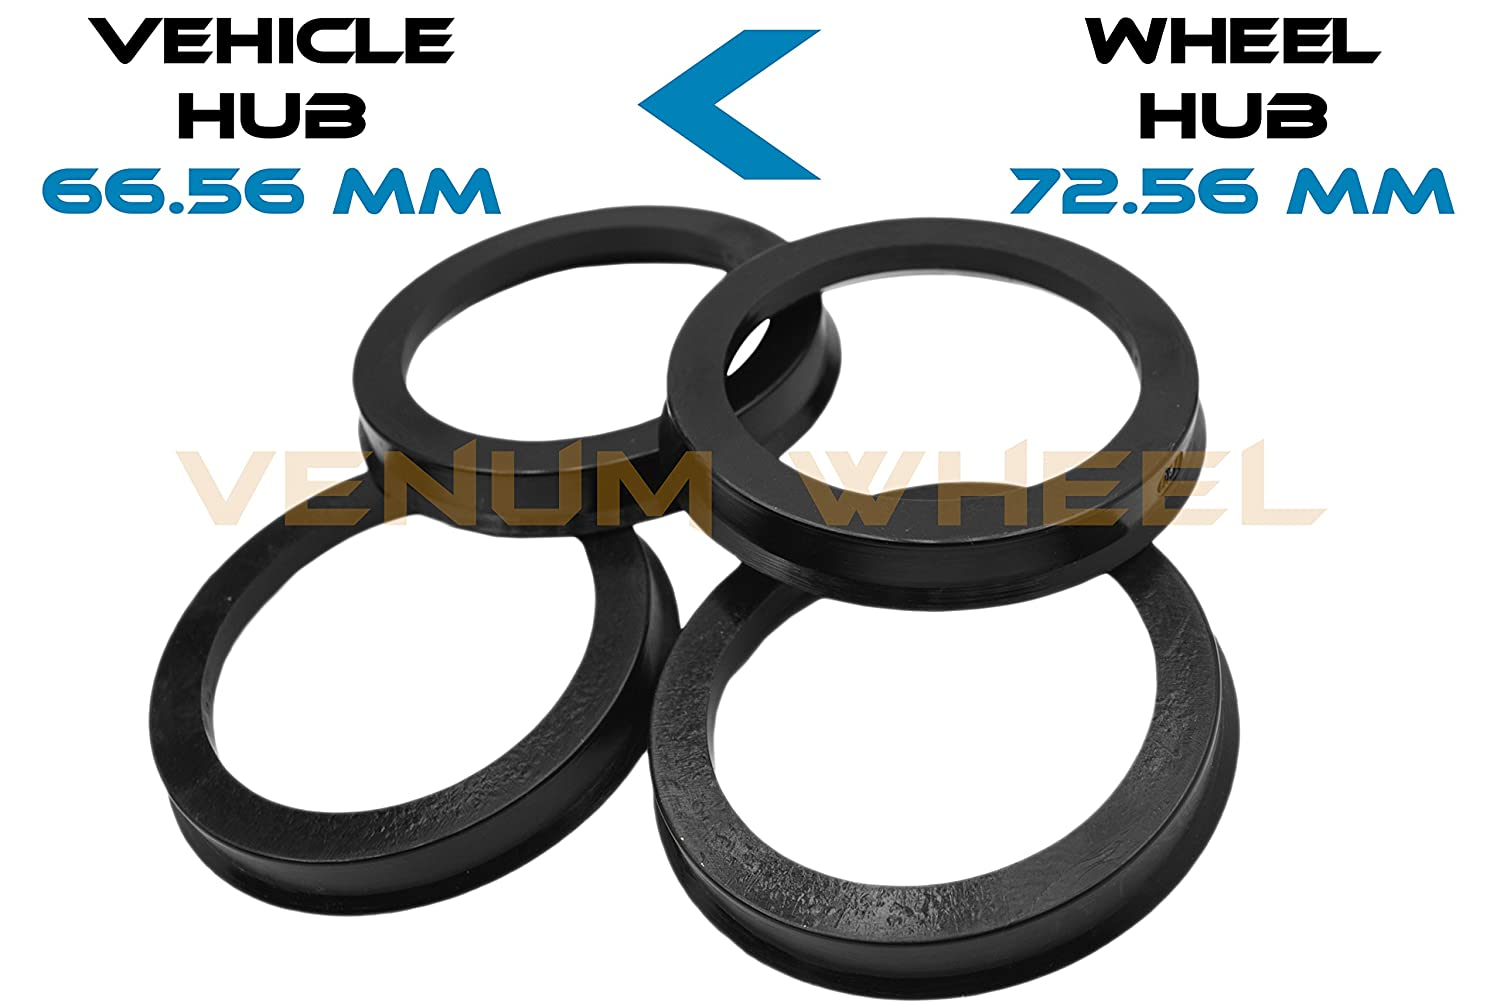 4 Hub Centric Rings 66.56 ID To 72.56 OD Black Polycarbonate Material ( Vehicle 66.56 mm to Wheel 72.56) VENUM WHEEL ACCESSORIES